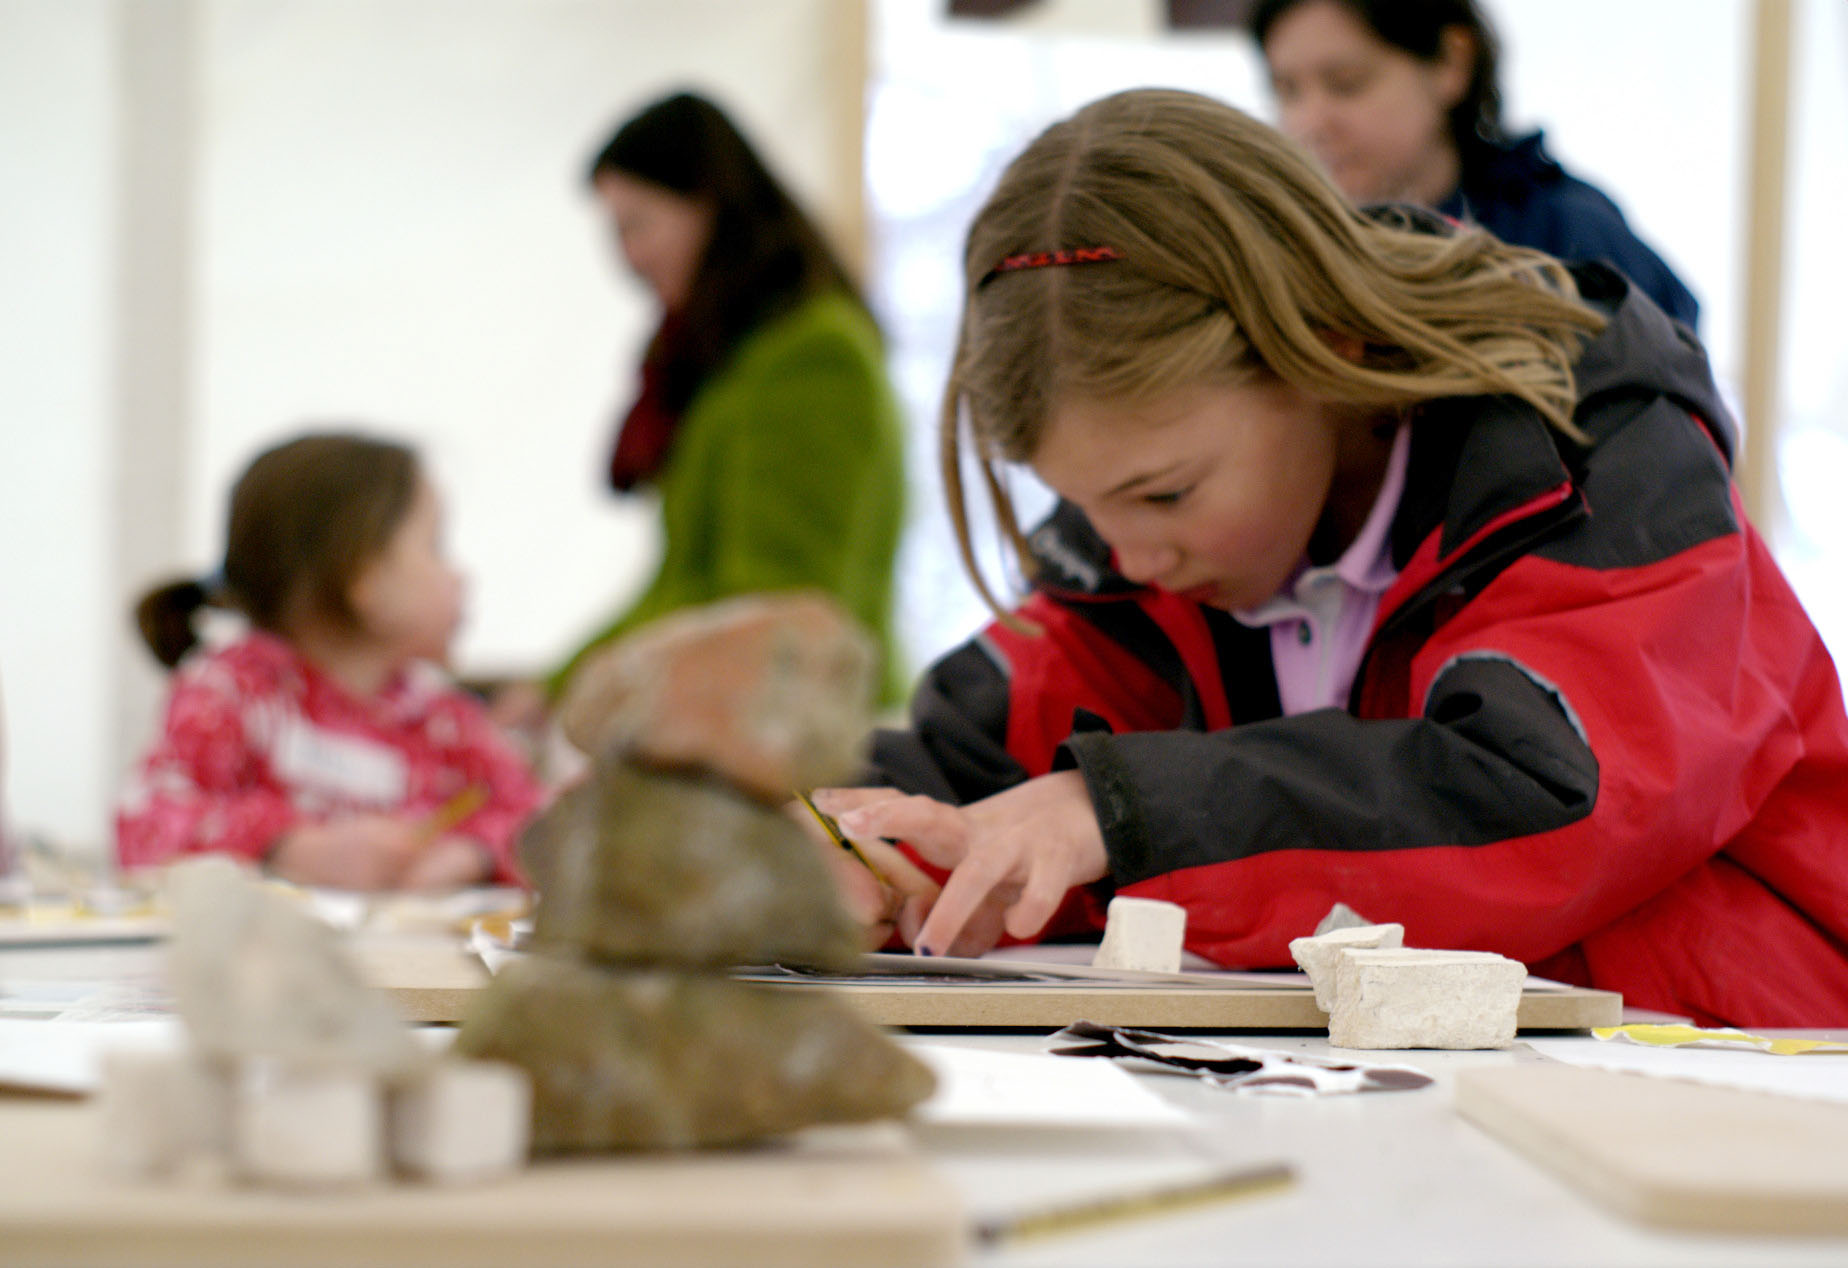 girl-drawing-yorkshire-sculpture-park-event-photography